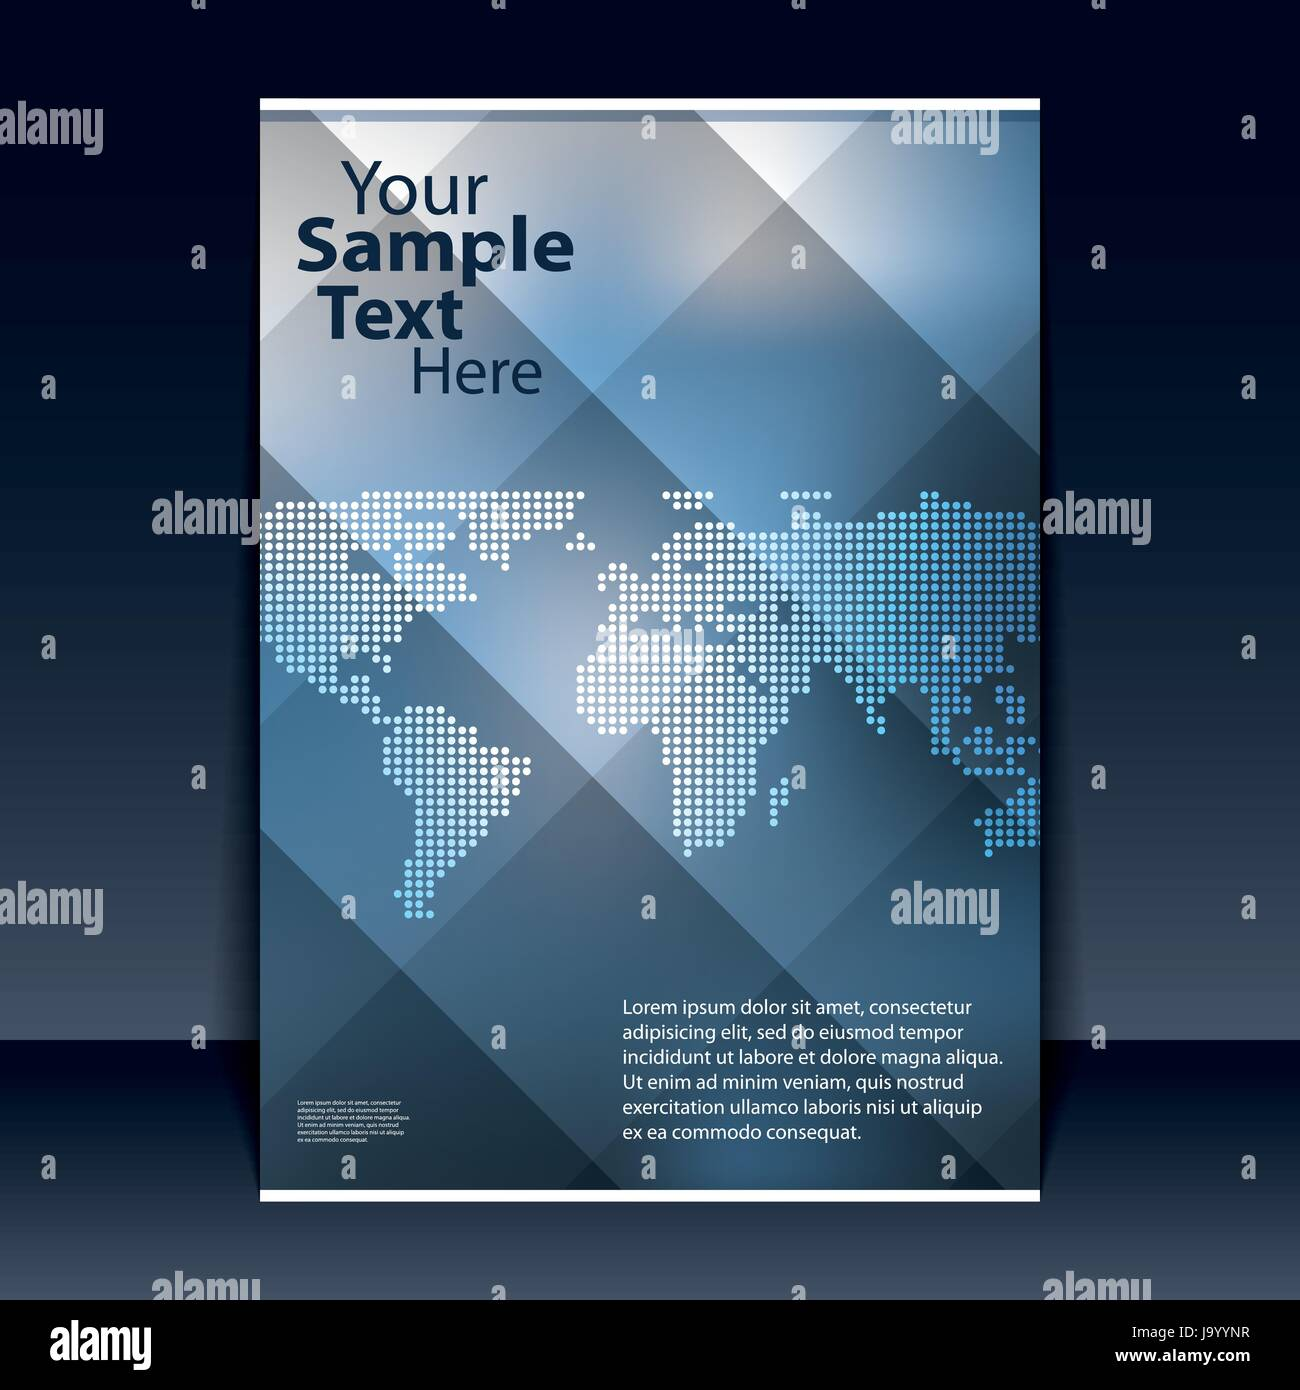 Abstract colorful flyer or book cover design with dotted world map abstract colorful flyer or book cover design with dotted world map and transparent tiles background for business or technology illustration in vector gumiabroncs Image collections